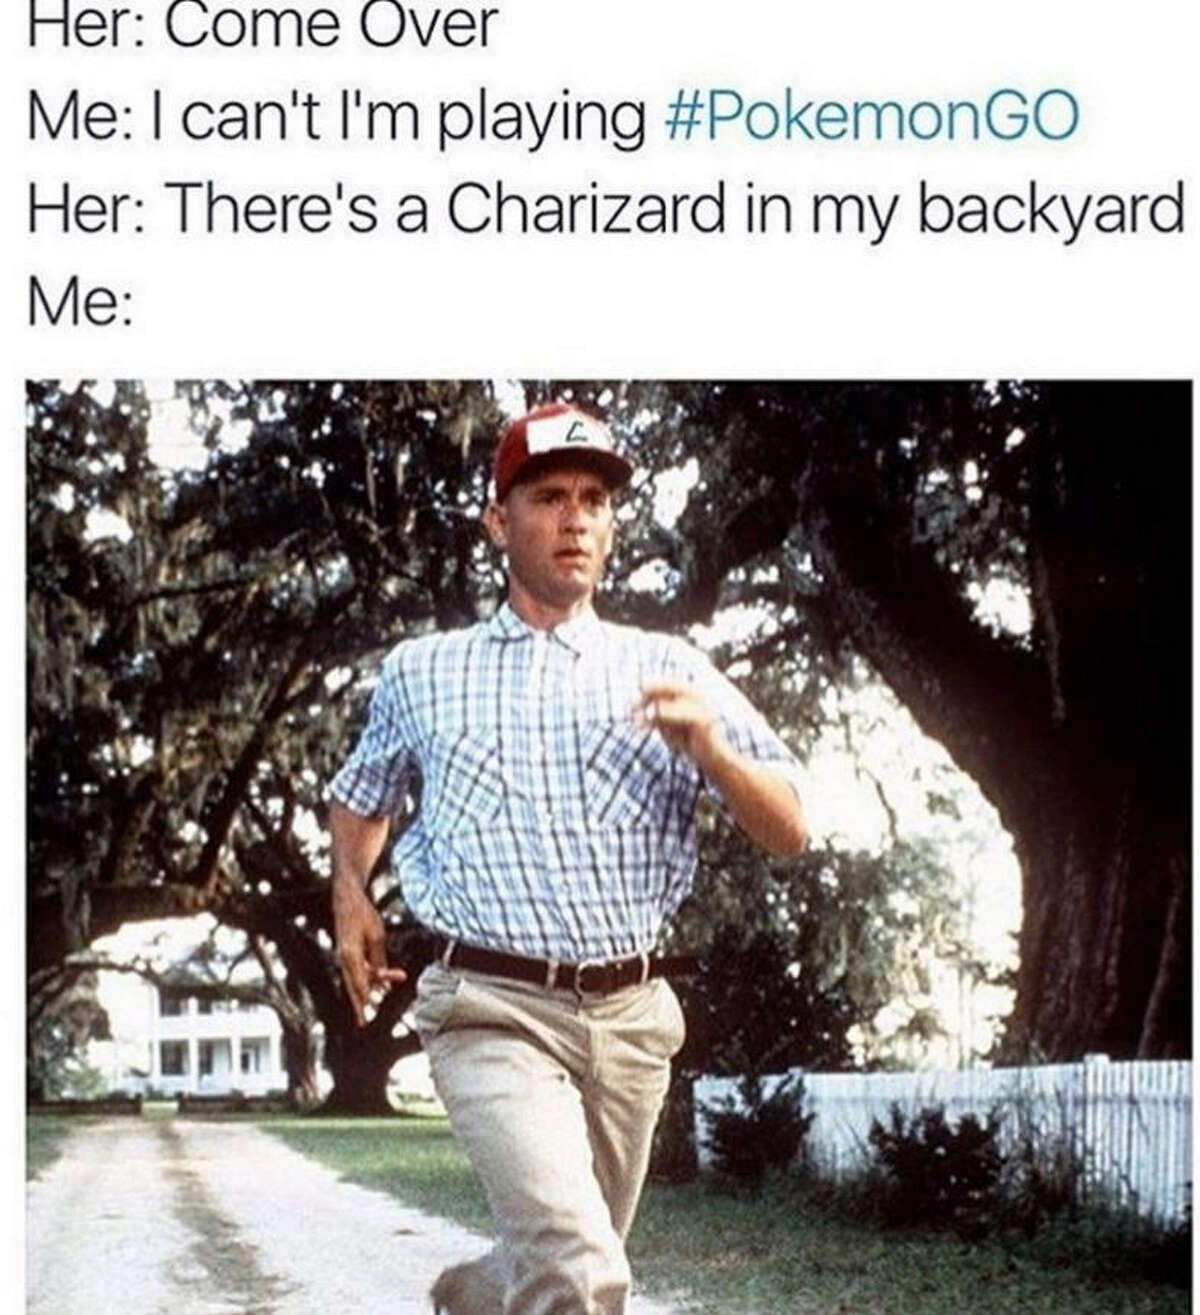 Pokémon Go, an augmented reality game, has people wandering their neighborhoods looking for Pokémon. Meme via HipHopDX